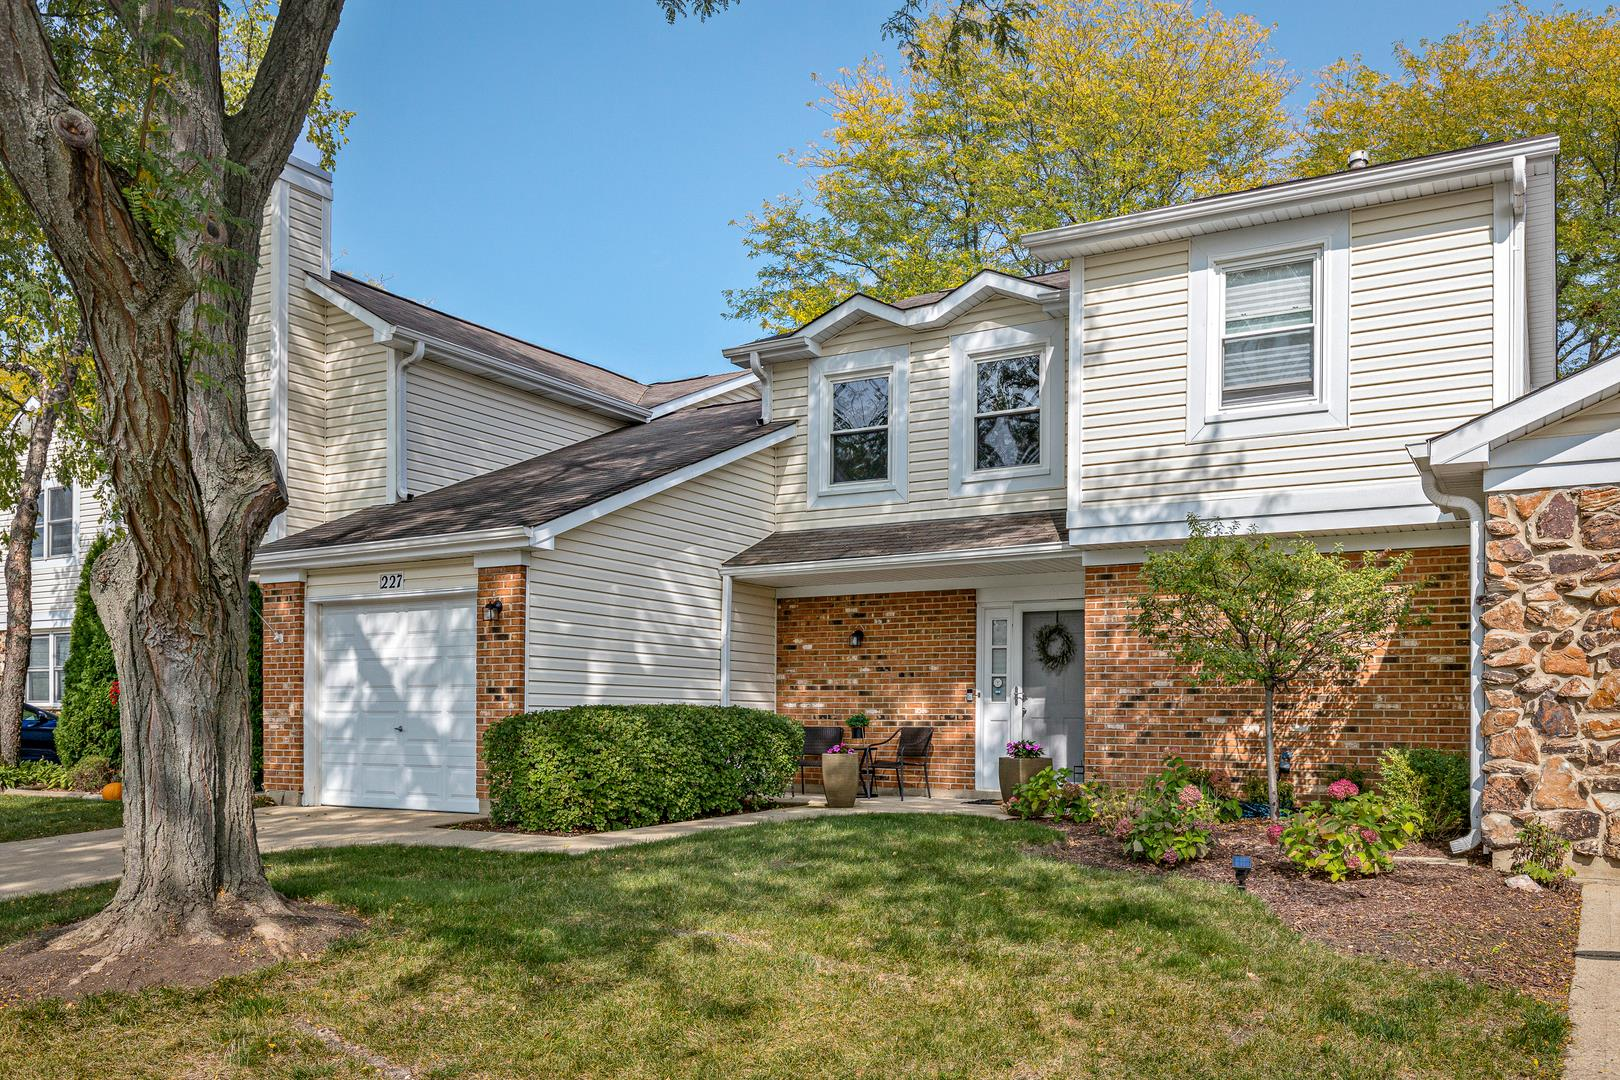 227 STANYON Lane #227, Bloomingdale, IL 60108 - #: 10863802